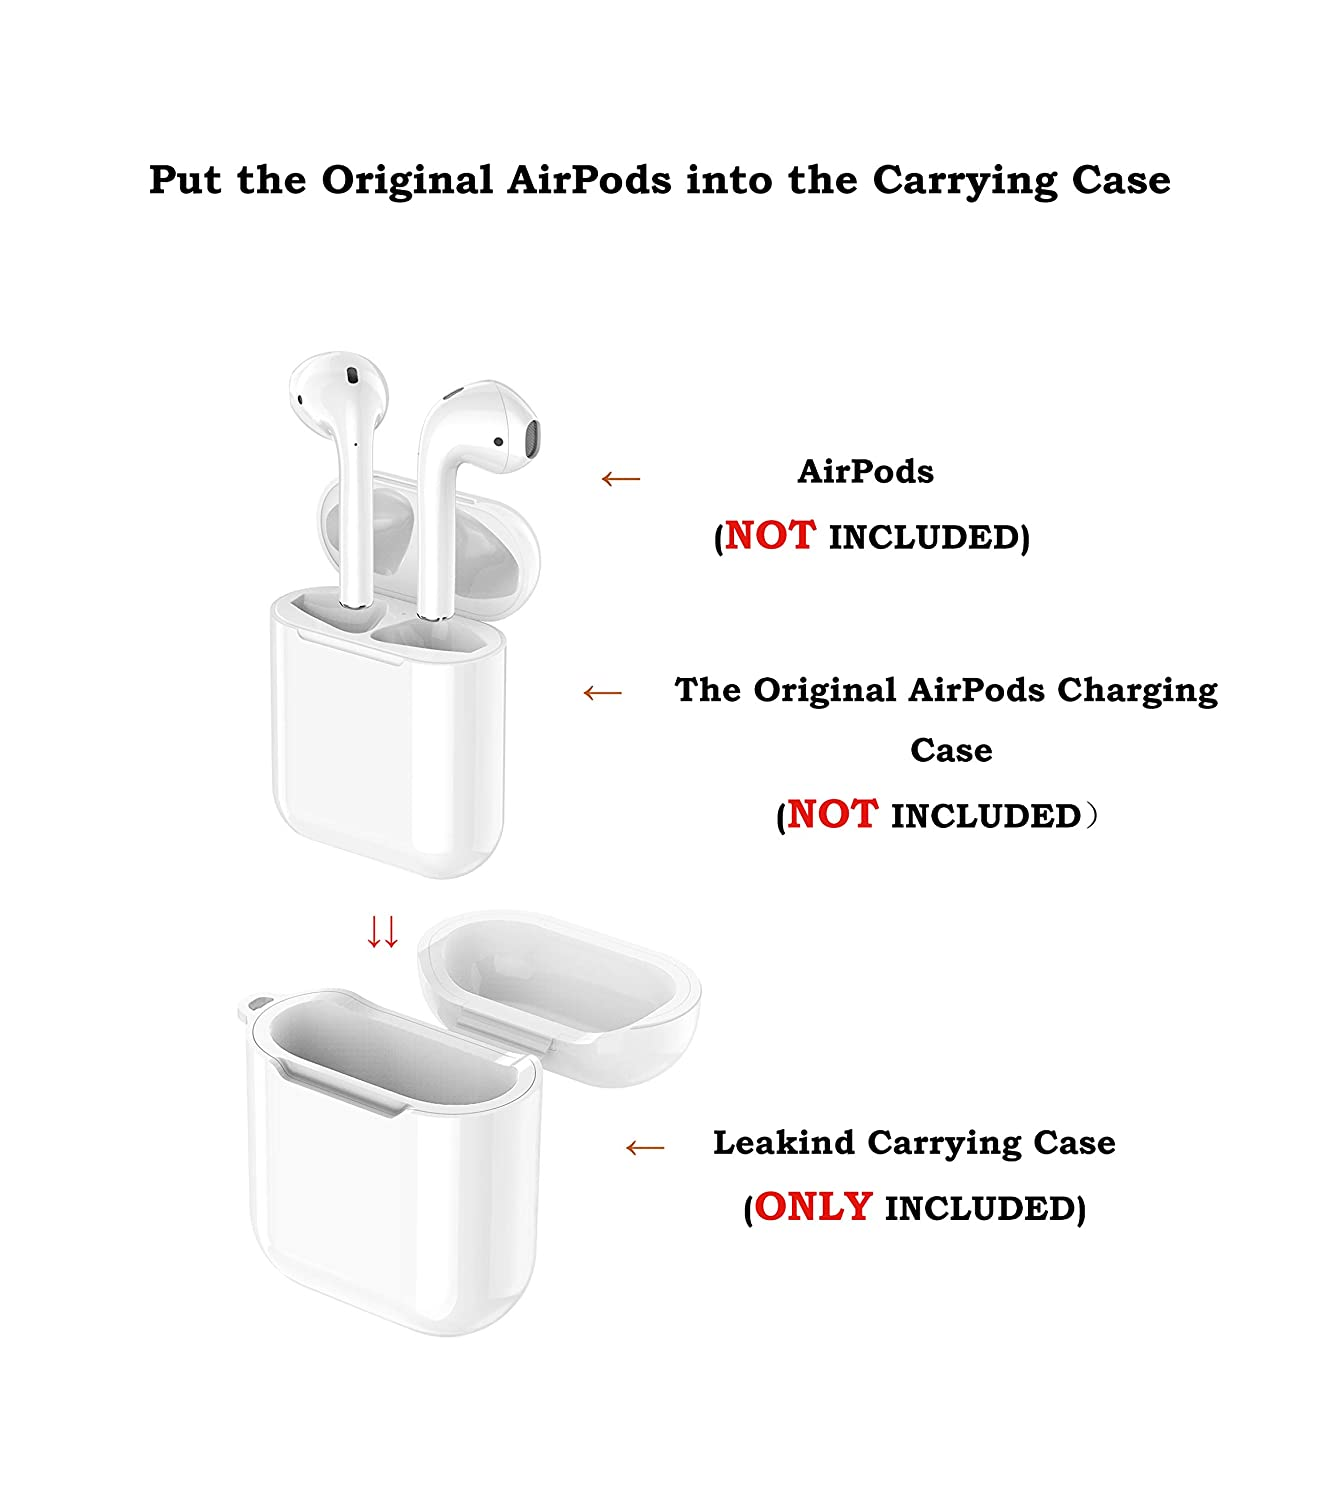 Leakind Wireless Carrying Case for Apple AirPods Charging Case, Protective Case Compatible with QI Wireless Charger